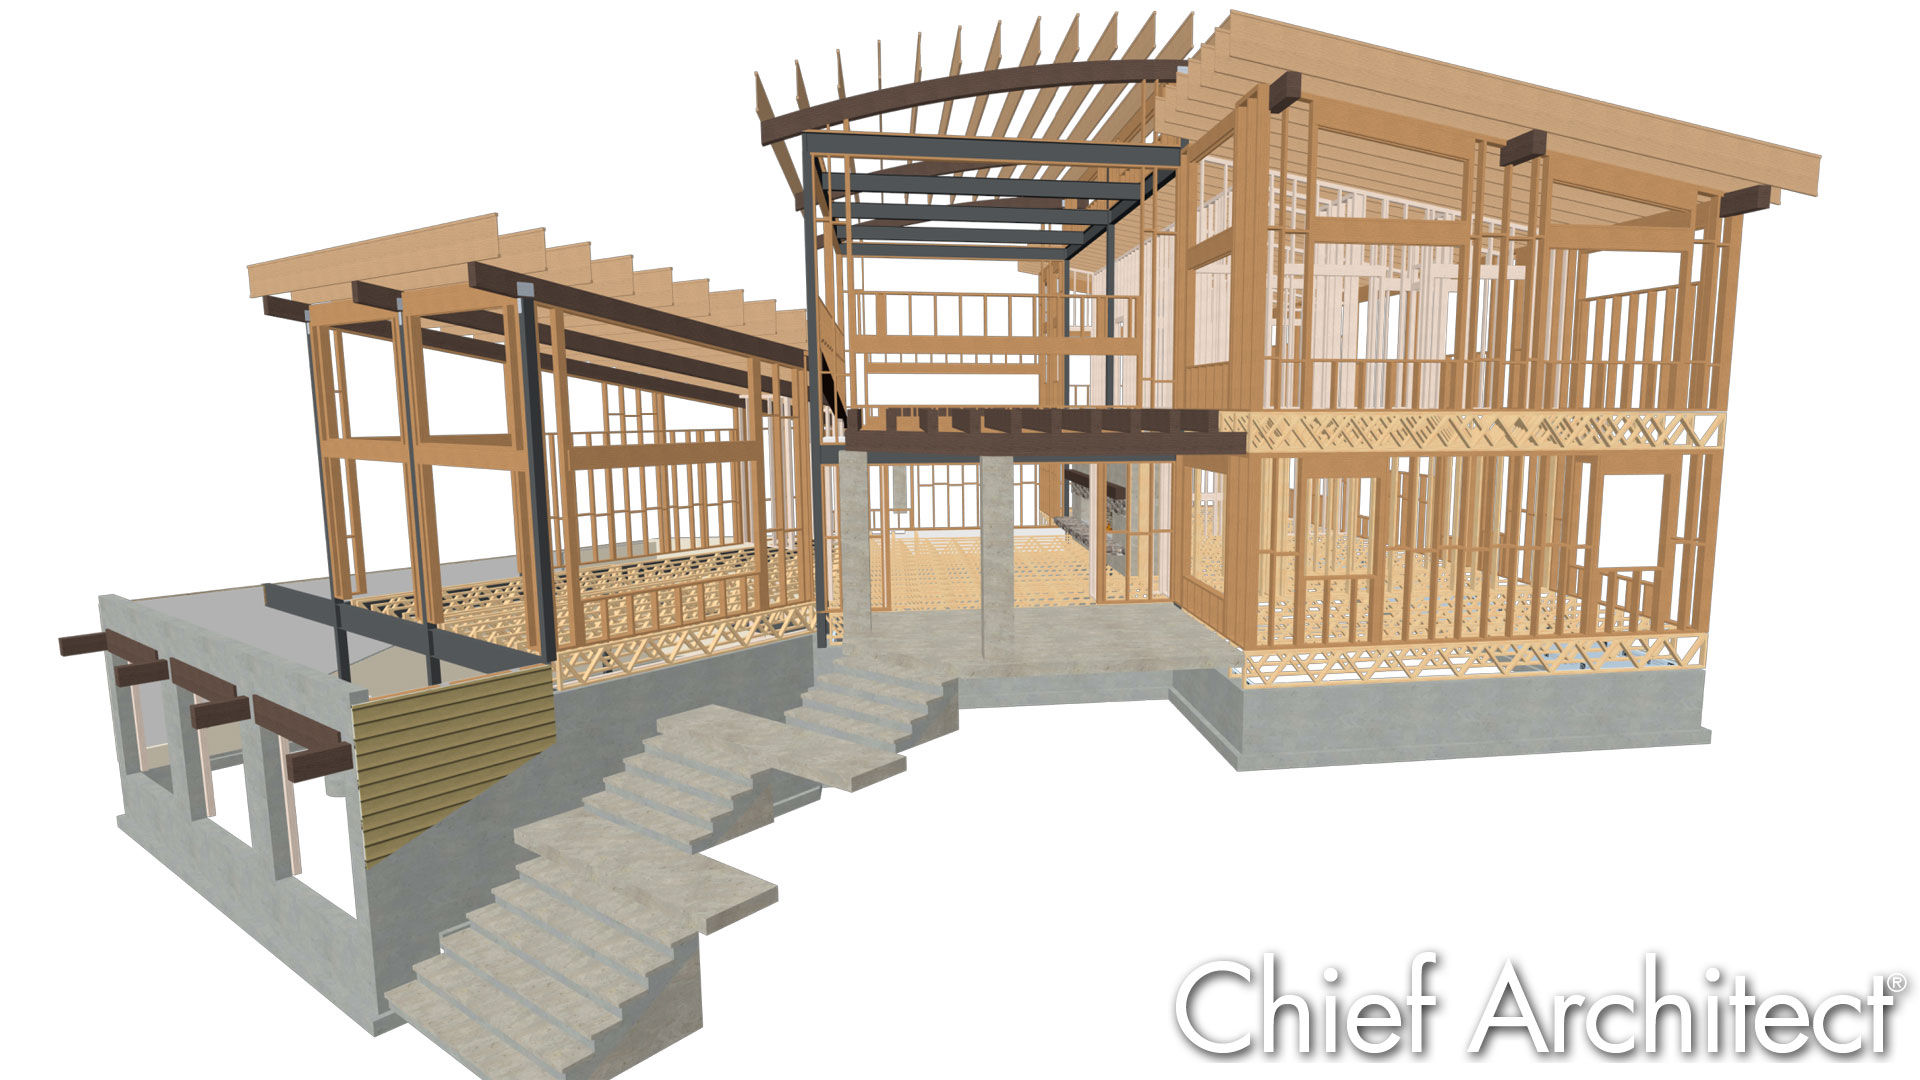 chief architect home design software - samples gallery